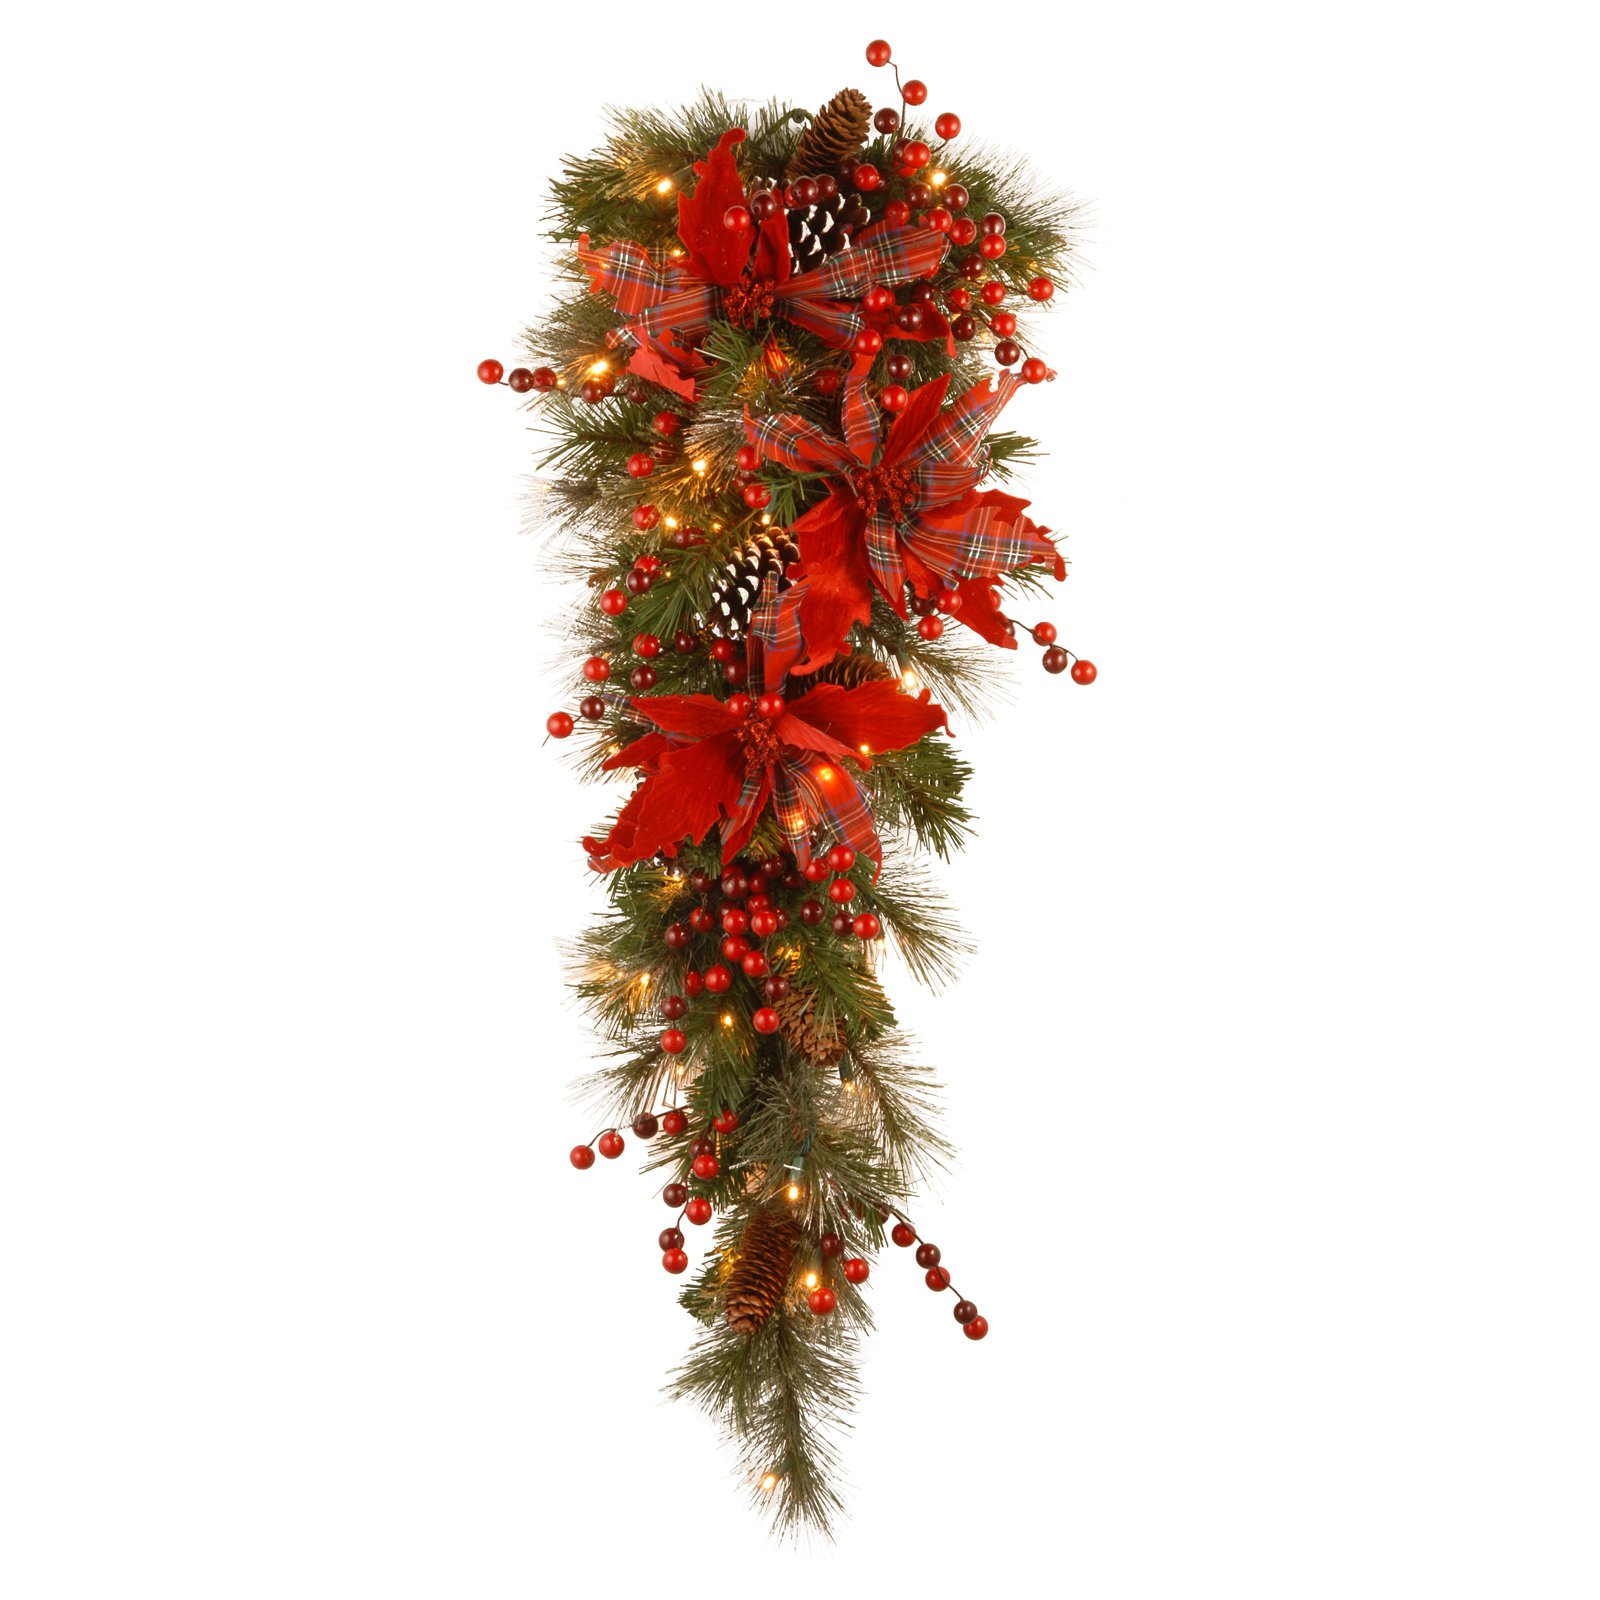 "National Tree 36"" Decorative Collection Tartan Plaid Teardrop with Cones, Red Berries, Poinsettias and 50 Warm White Battery Operated LEDs with Timer"